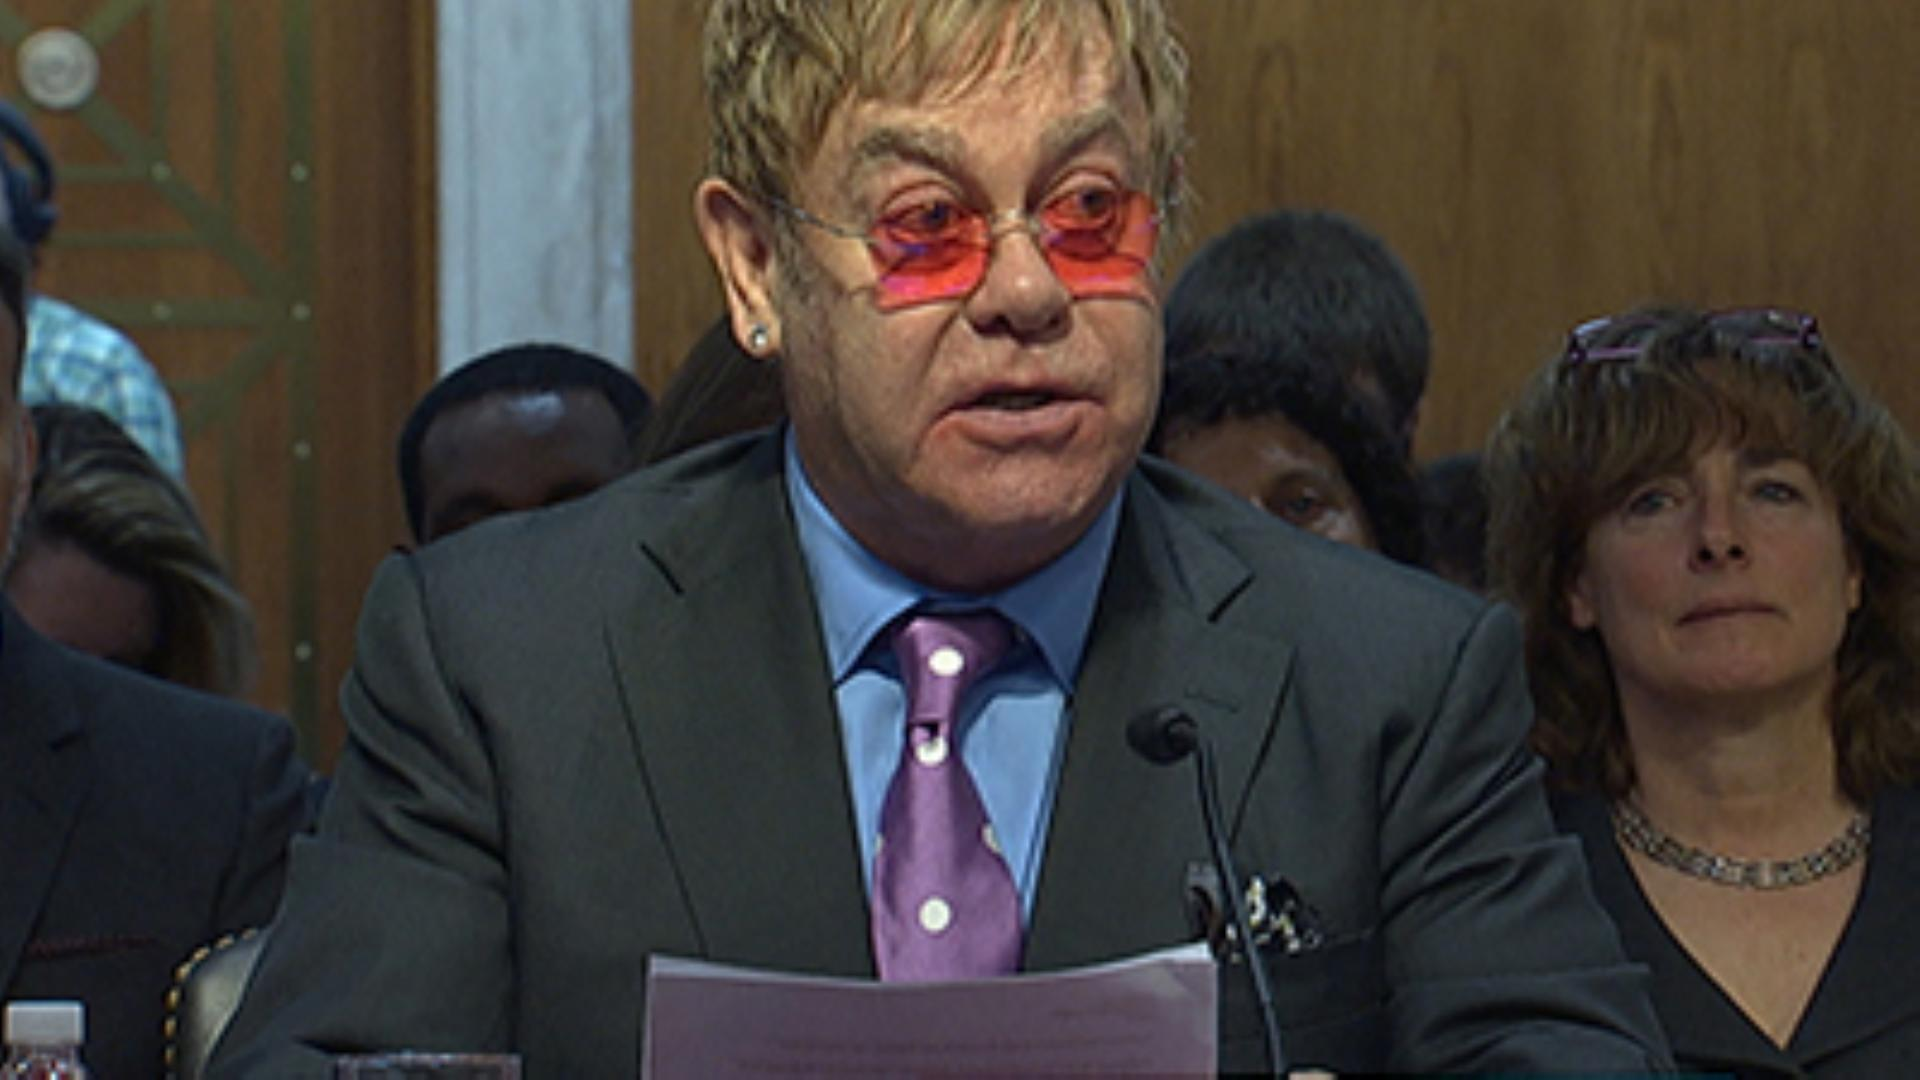 Elton John: 'AIDS Epidemic Not Over'